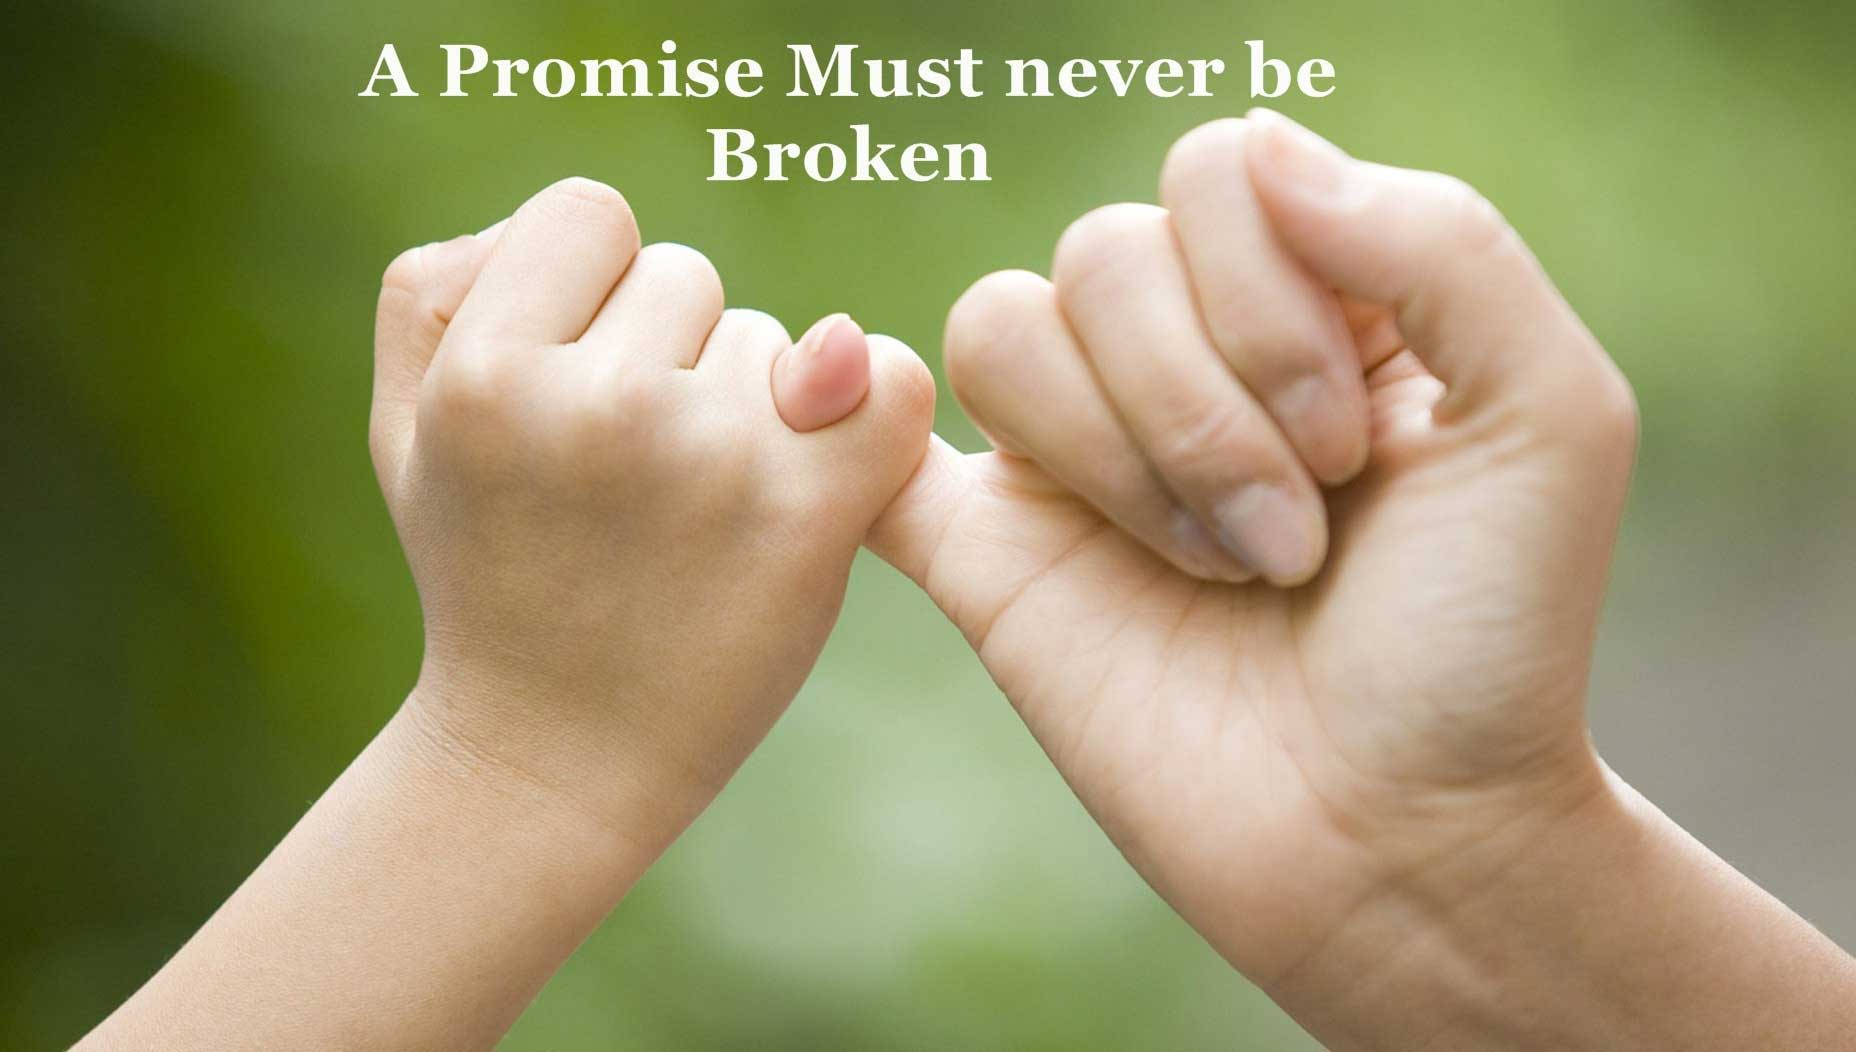 Happy Promise Day A promise must never latest image for your valentine